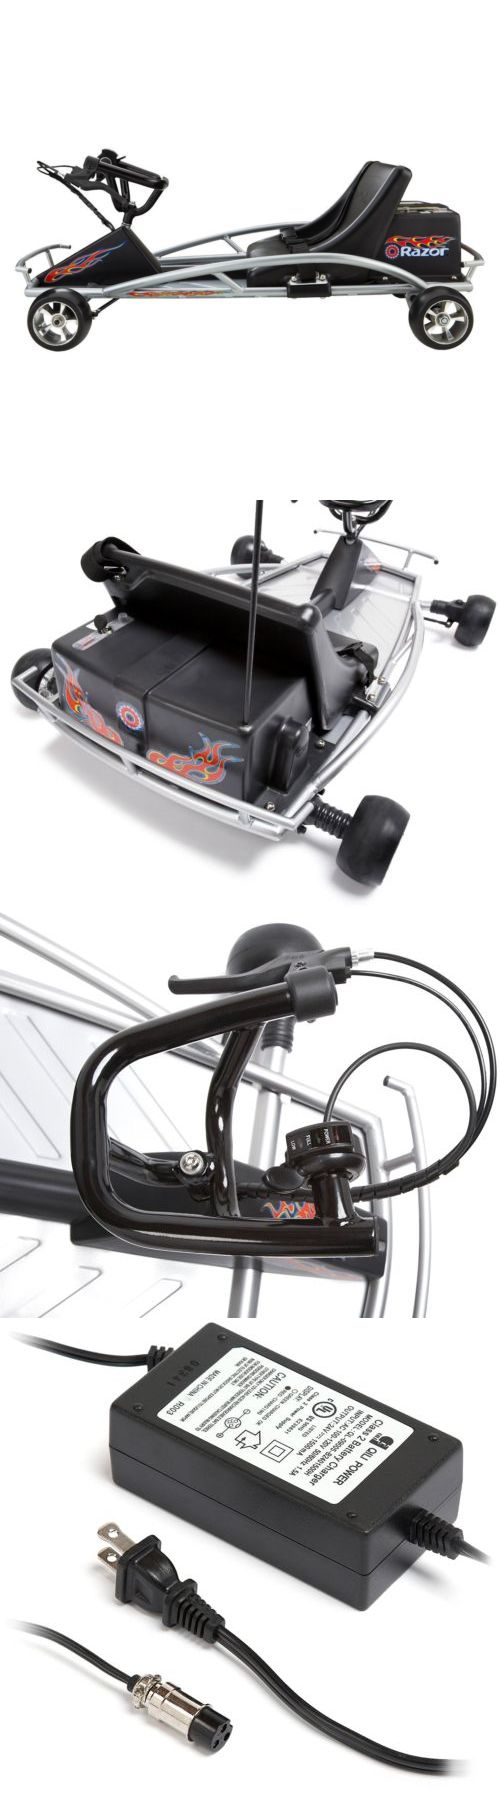 Complete Go-Karts and Frames 64656: Razor Ground Force Electric-Powered Go-Kart -> BUY IT NOW ONLY: $250 on eBay!